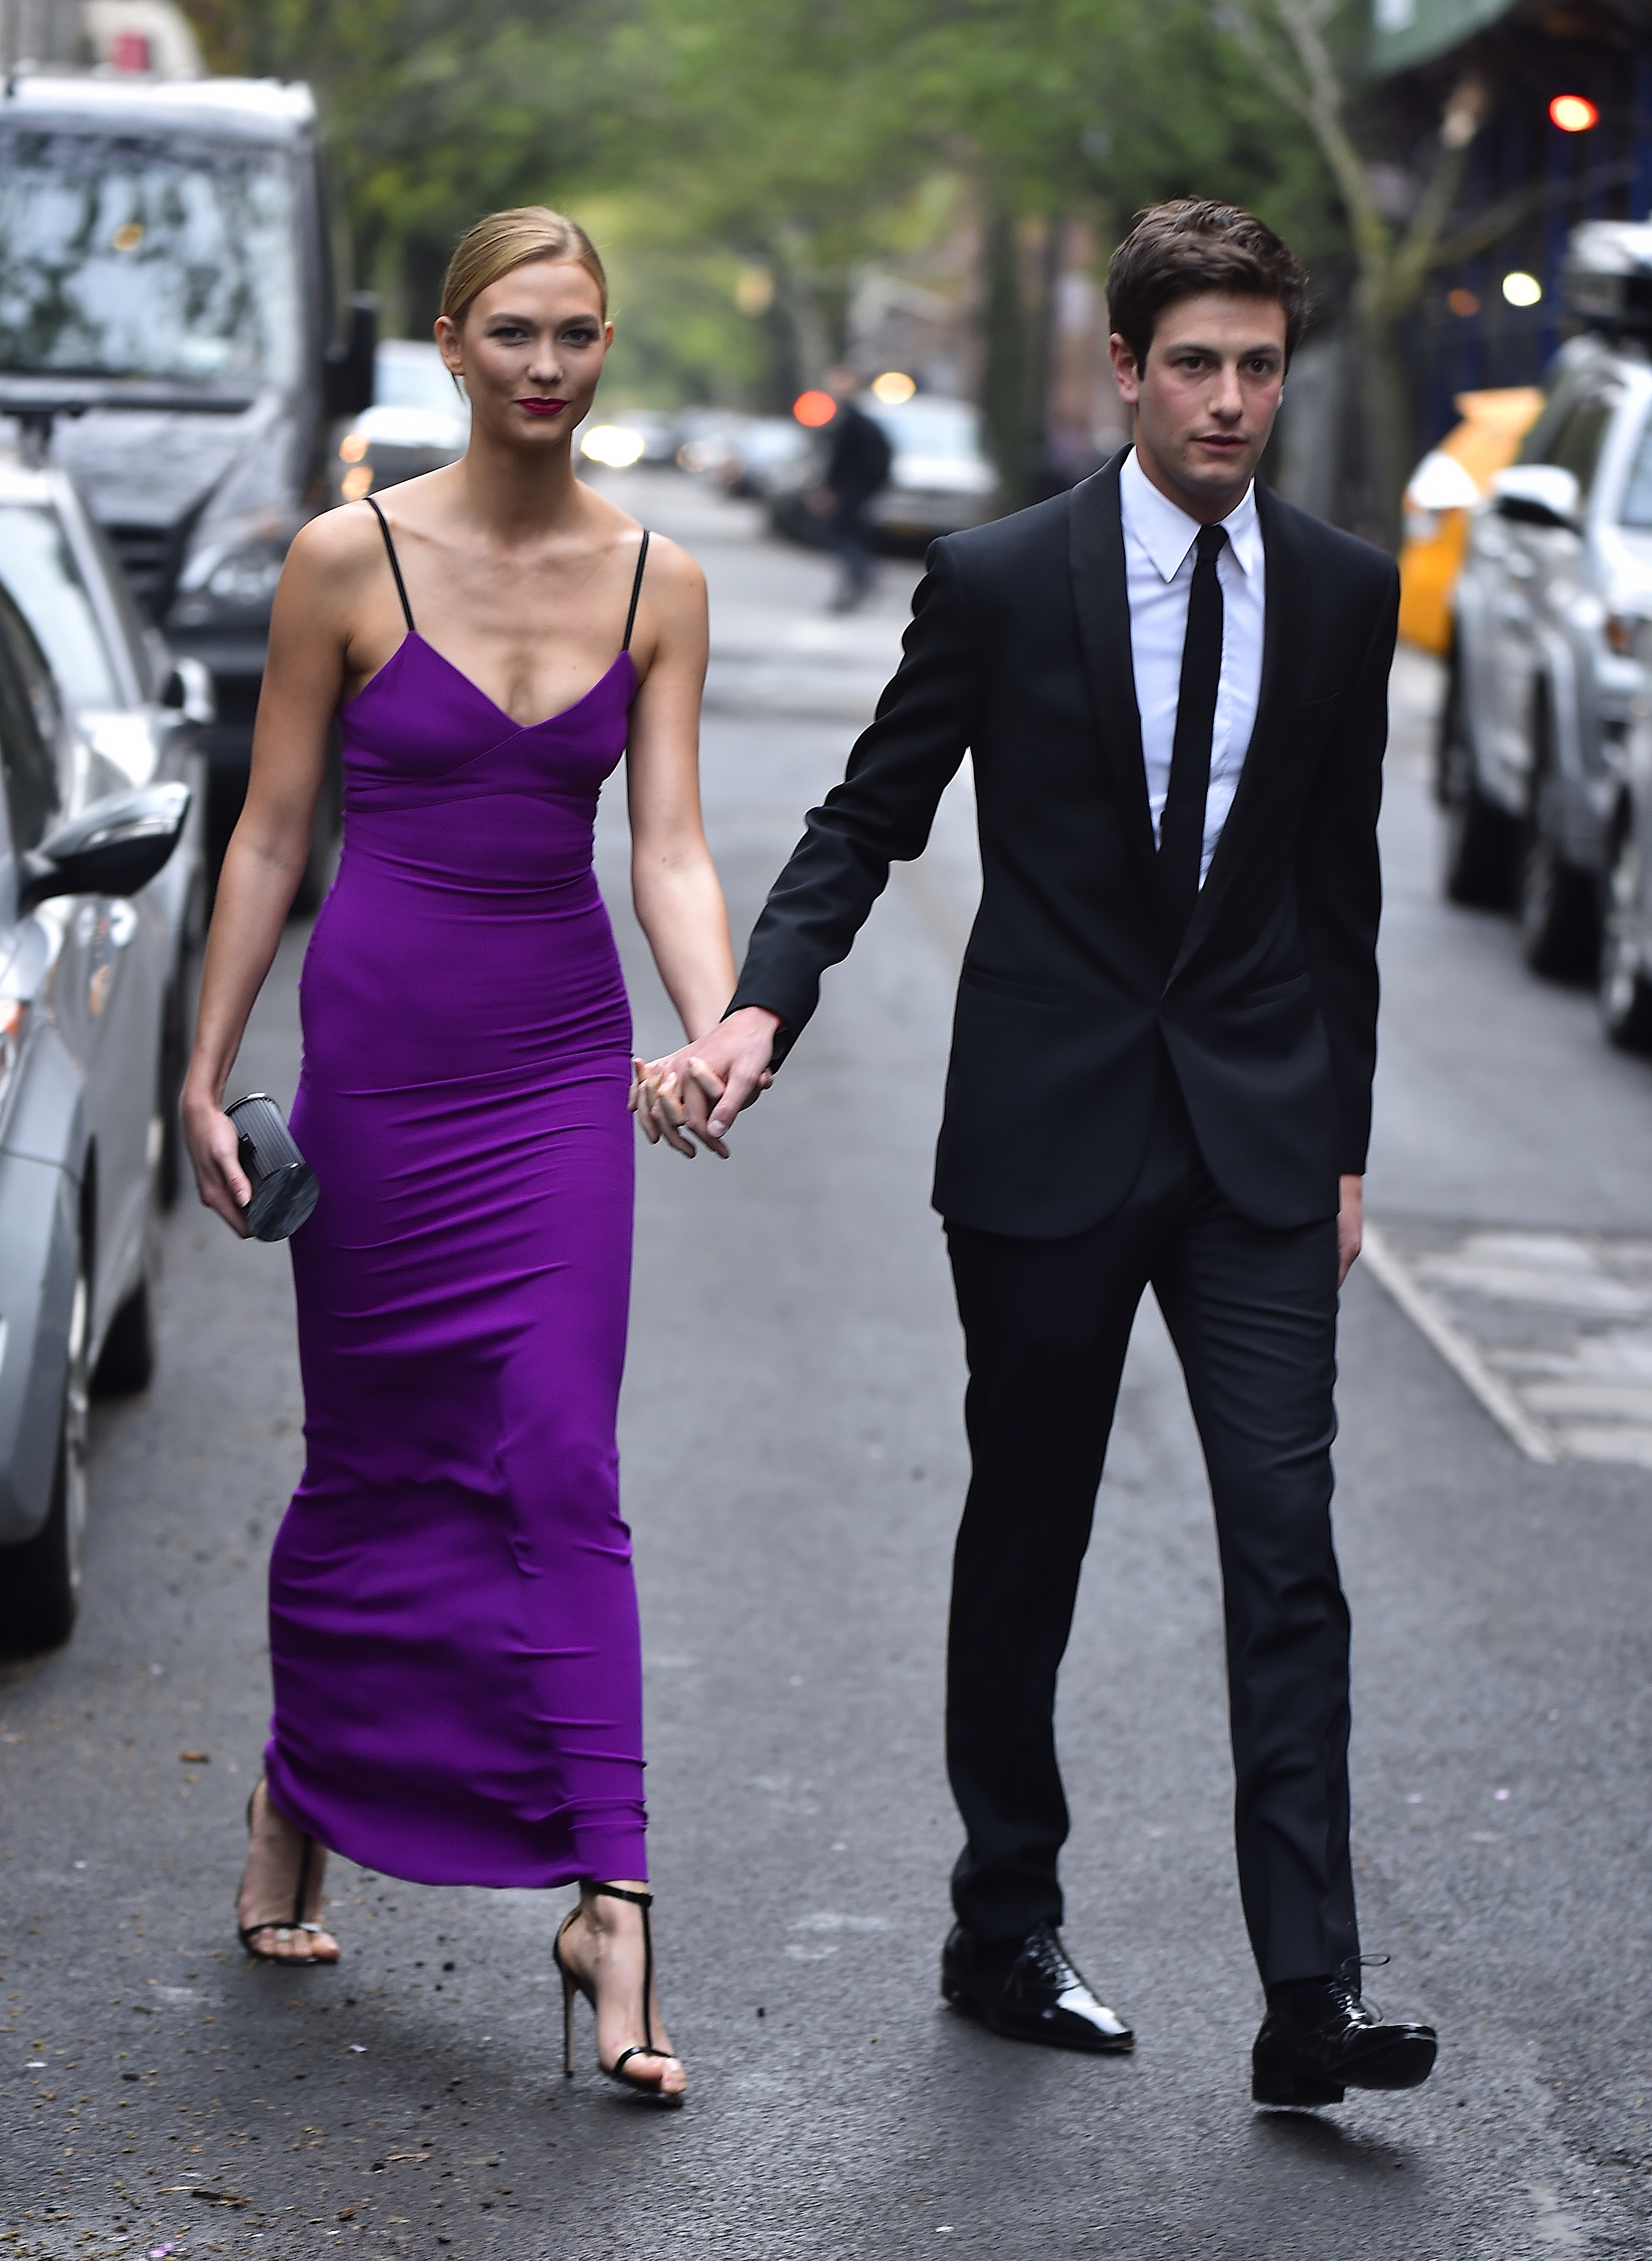 """<p>Karlie Kloss is set to become the <a href=""""https://style.nine.com.au/2017/12/12/13/29/kate-upton-wedding-makeup-products-beauty"""" target=""""_blank"""" title=""""latest supermodel to say 'I do'."""" draggable=""""false"""">latest supermodel to say 'I do'.</a><br /> <br /> The <em>Vogue</em> regular, <a href=""""https://style.nine.com.au/2018/06/18/15/32/victorias-secret"""" target=""""_blank"""" title=""""who has worked with the likes of Victoria's Secret"""" draggable=""""false"""">who has worked with the likes of Victoria's Secret</a>, David Jones, L'Oreal, Swarovski and Lanvin, has announced her engagement to long-time boyfriend Joshua Kushner.<br /> <br /> The 24-year-old broke the news <a href=""""https://www.instagram.com/karliekloss/?hl=encm"""" target=""""_blank"""" title=""""via Instagram"""" draggable=""""false"""">via Instagram</a>, sharing a candid selfie of herself and her new fiancée with her 7.5 million followers.</p> <p>""""I love you more than I have words to express. Josh, you're my best friend and my soulmate. I can't wait for forever together. Yes a million times over,"""" Kloss captioned the post.</p> <p>Kloss later followed up the post by revealing her ring in a story.</p> <p>The pair have been together since 2012 and the engagement will see the supermodel add the US first family to her family tree.<br /> <br /> Her 33-year-old fiancée, who is the founder of investment firm Thrive Capital, is the younger brother of Jared Kushner, the husband of Ivanka Trump and a senior advisor to the president.<br /> <br /> While Kloss gets busy figuring out how to fit the fashion world and her new family members in one room, we have taken over the dress details by serving up some bridal gown inspiration courtesy of some of the world's biggest supermodels.<br /> <br /> From Kate Moss in John Galliano to Miranda Kerr in custom Dior and Cindy Crawford in a slip dress, click through to see the most stylish supermodel brides of all time.</p>"""